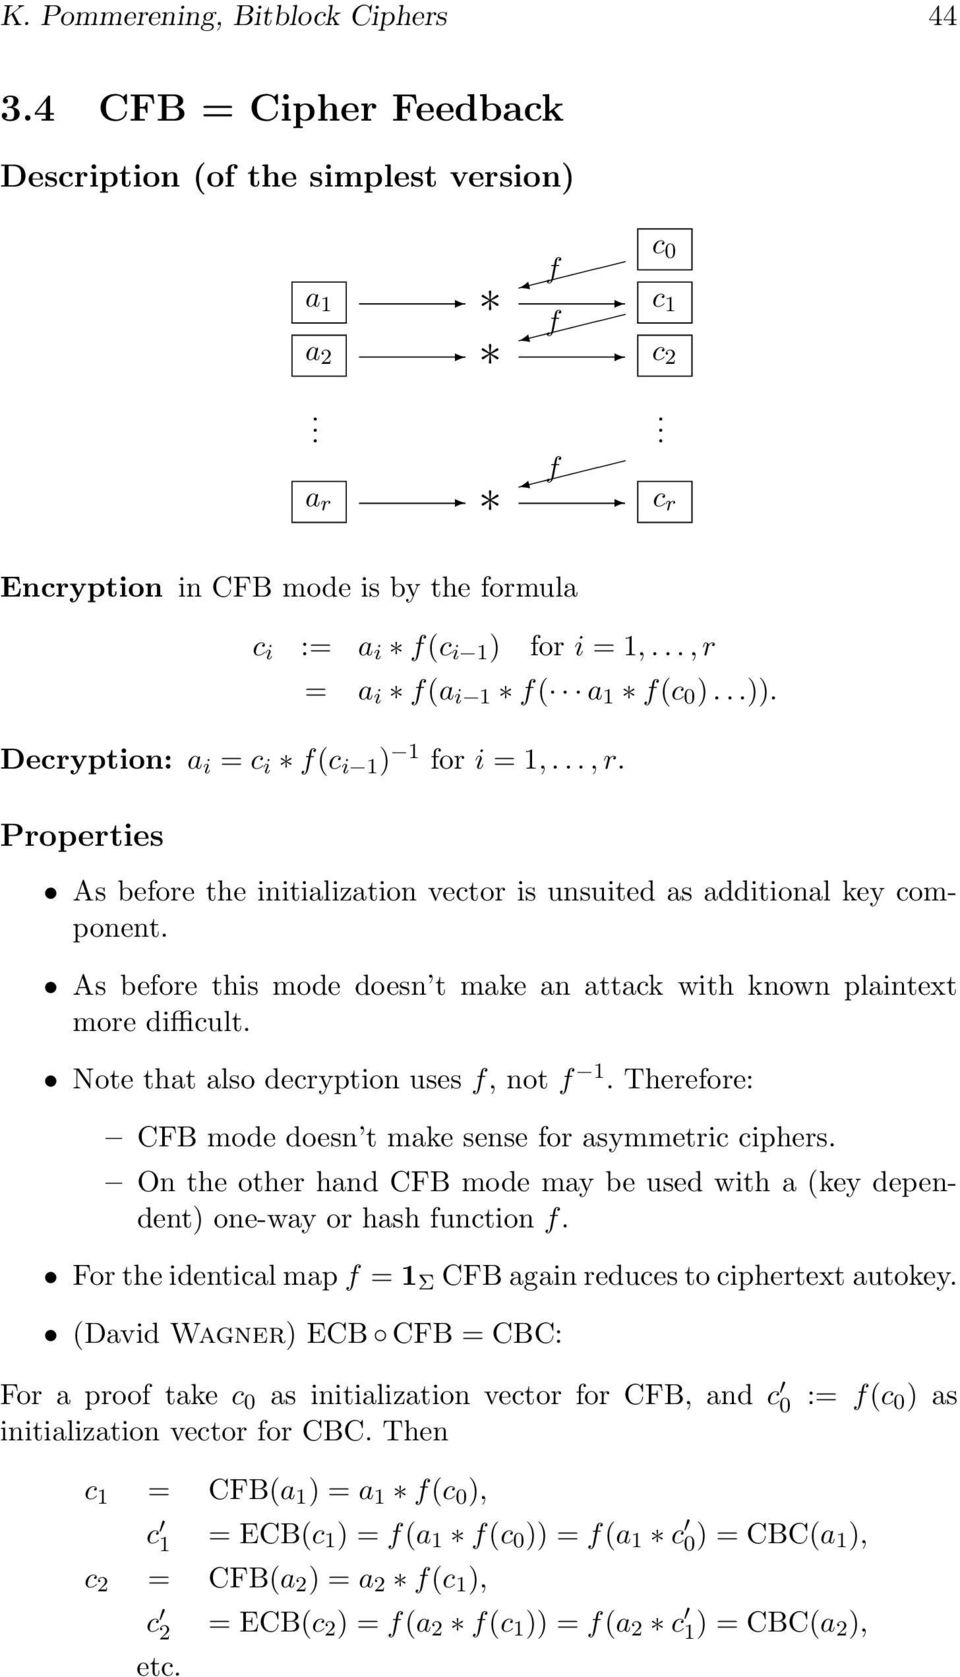 make an attack with known plaintext more difficult Note that also decryption uses f, not f 1 Therefore: CFB mode doesn t make sense for asymmetric ciphers On the other hand CFB mode may be used with